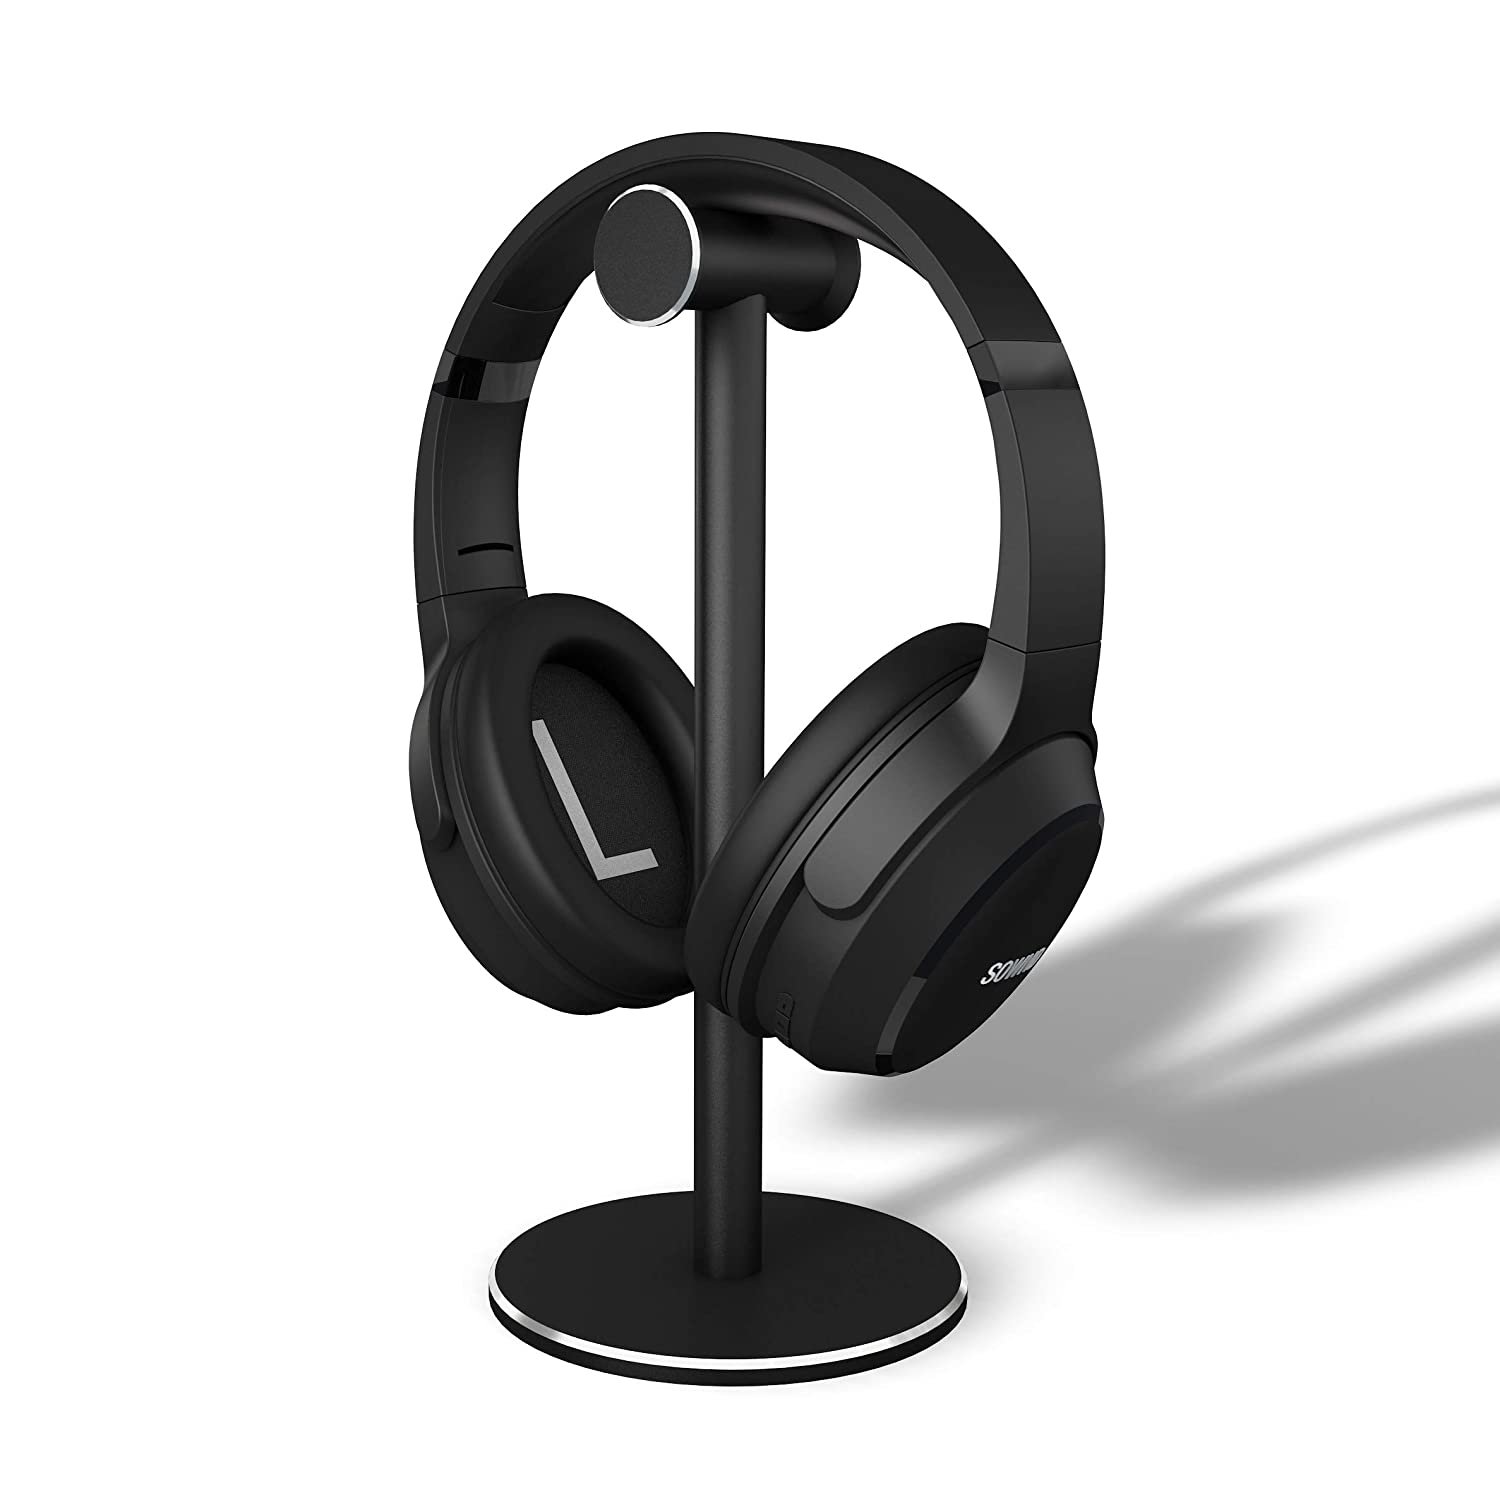 SOWND Headphone Stand Headset Stand Full Aluminum Construction Non-Slip Silicone Pad Gaming Headset Holder-Black M H Audio Inc Headphone holder-001